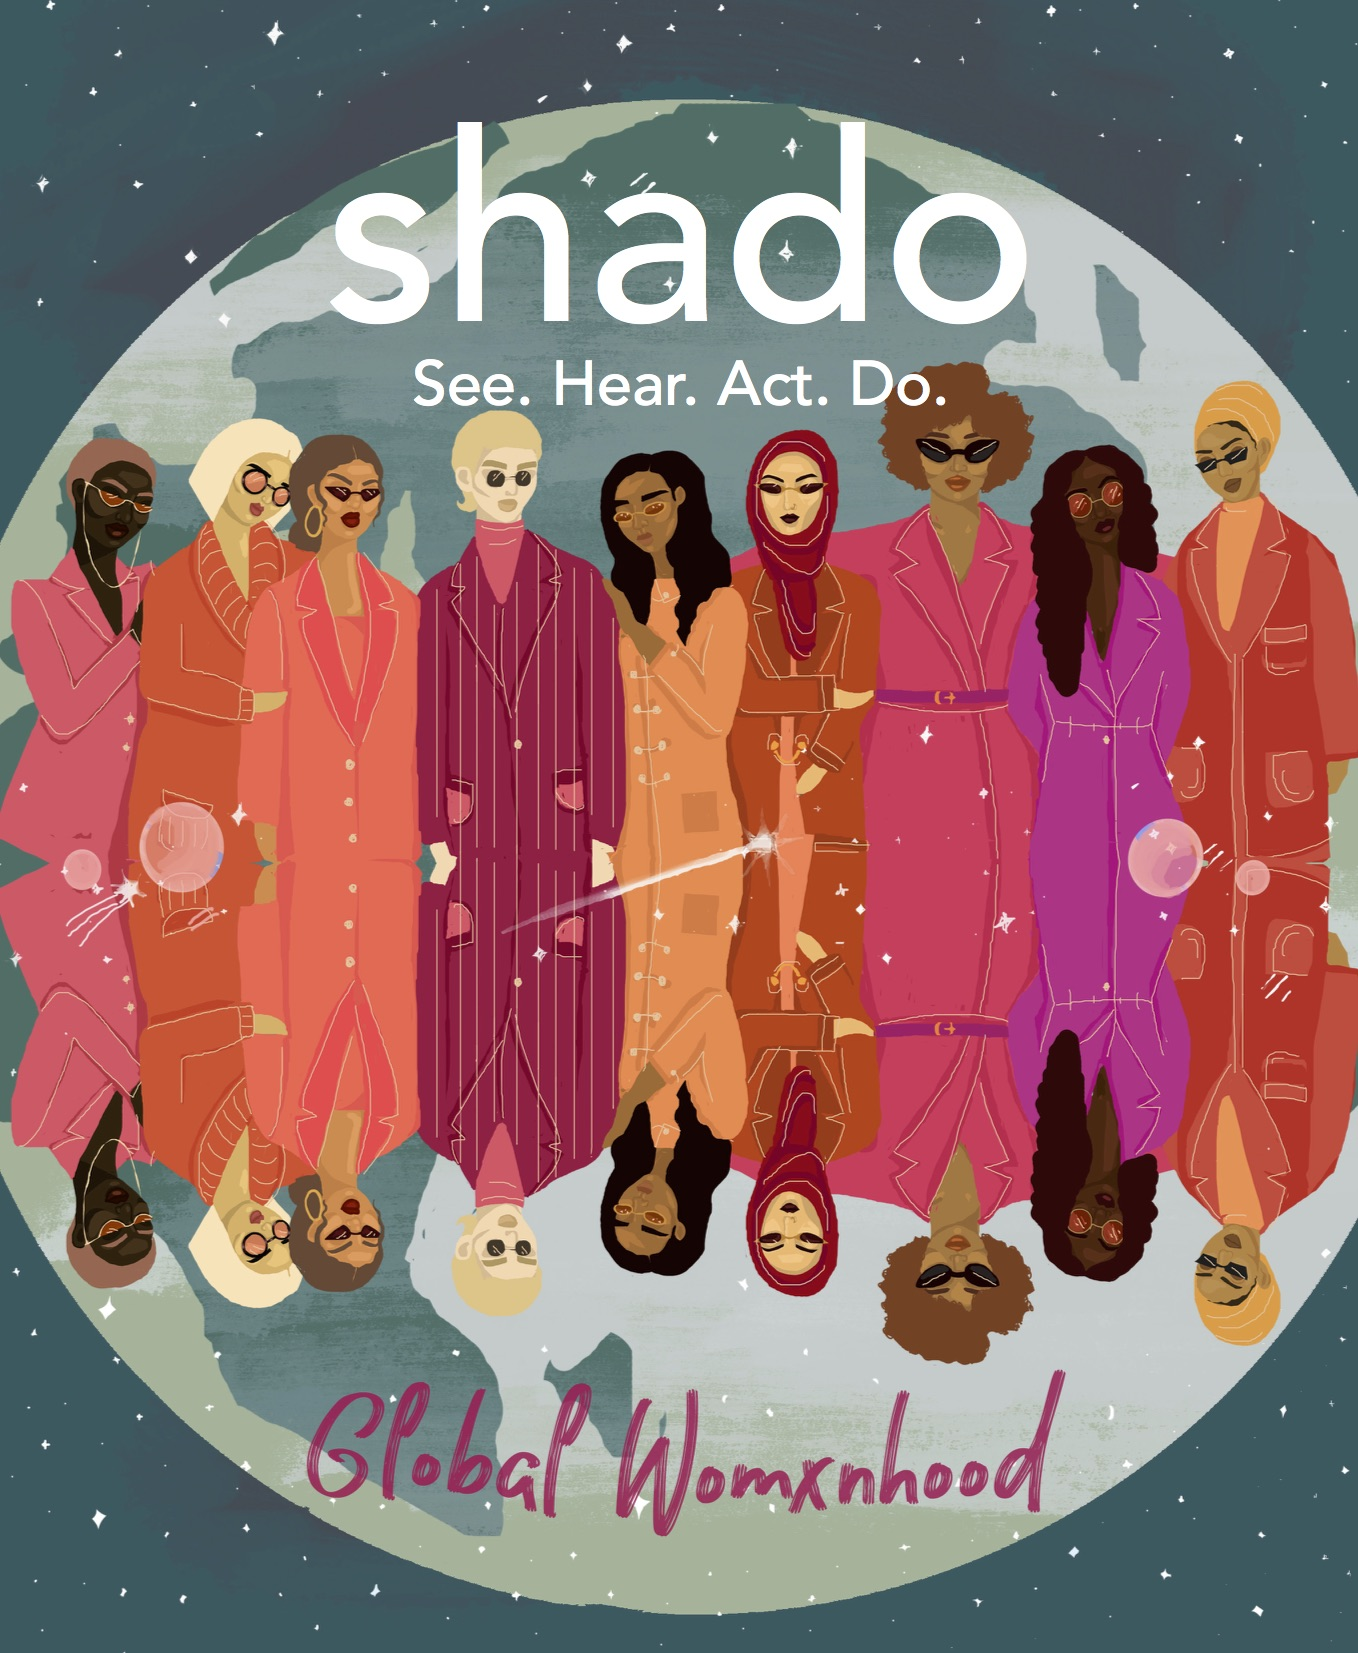 Shado Magazine issue two cover